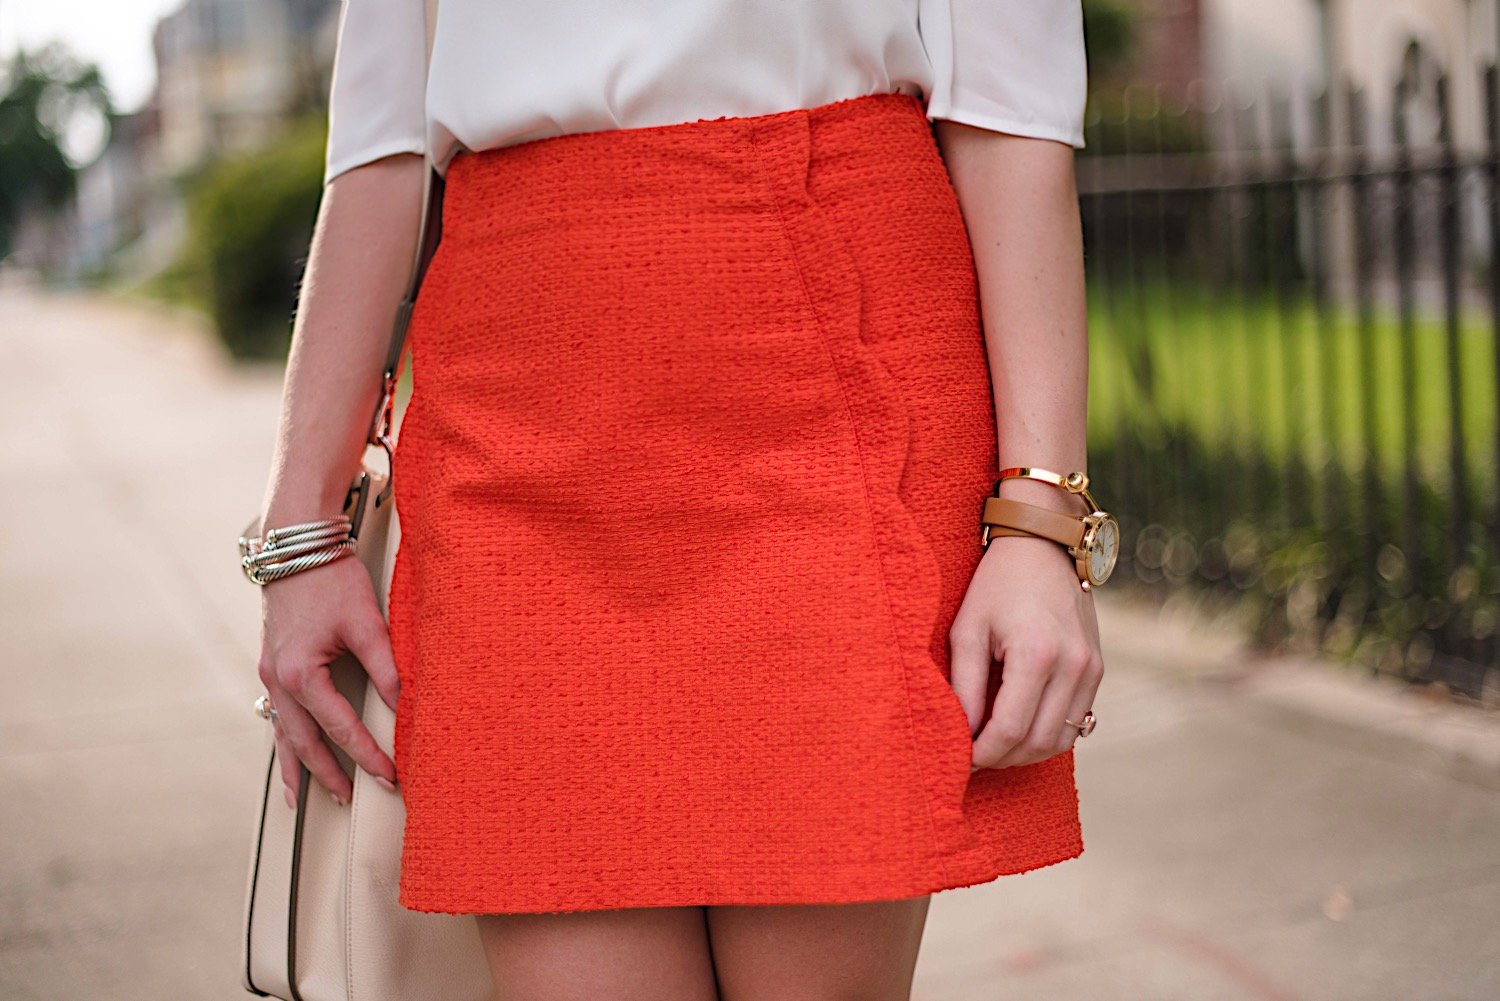 Scallop Skirt - Click through to see more on Something Delightful Blog!